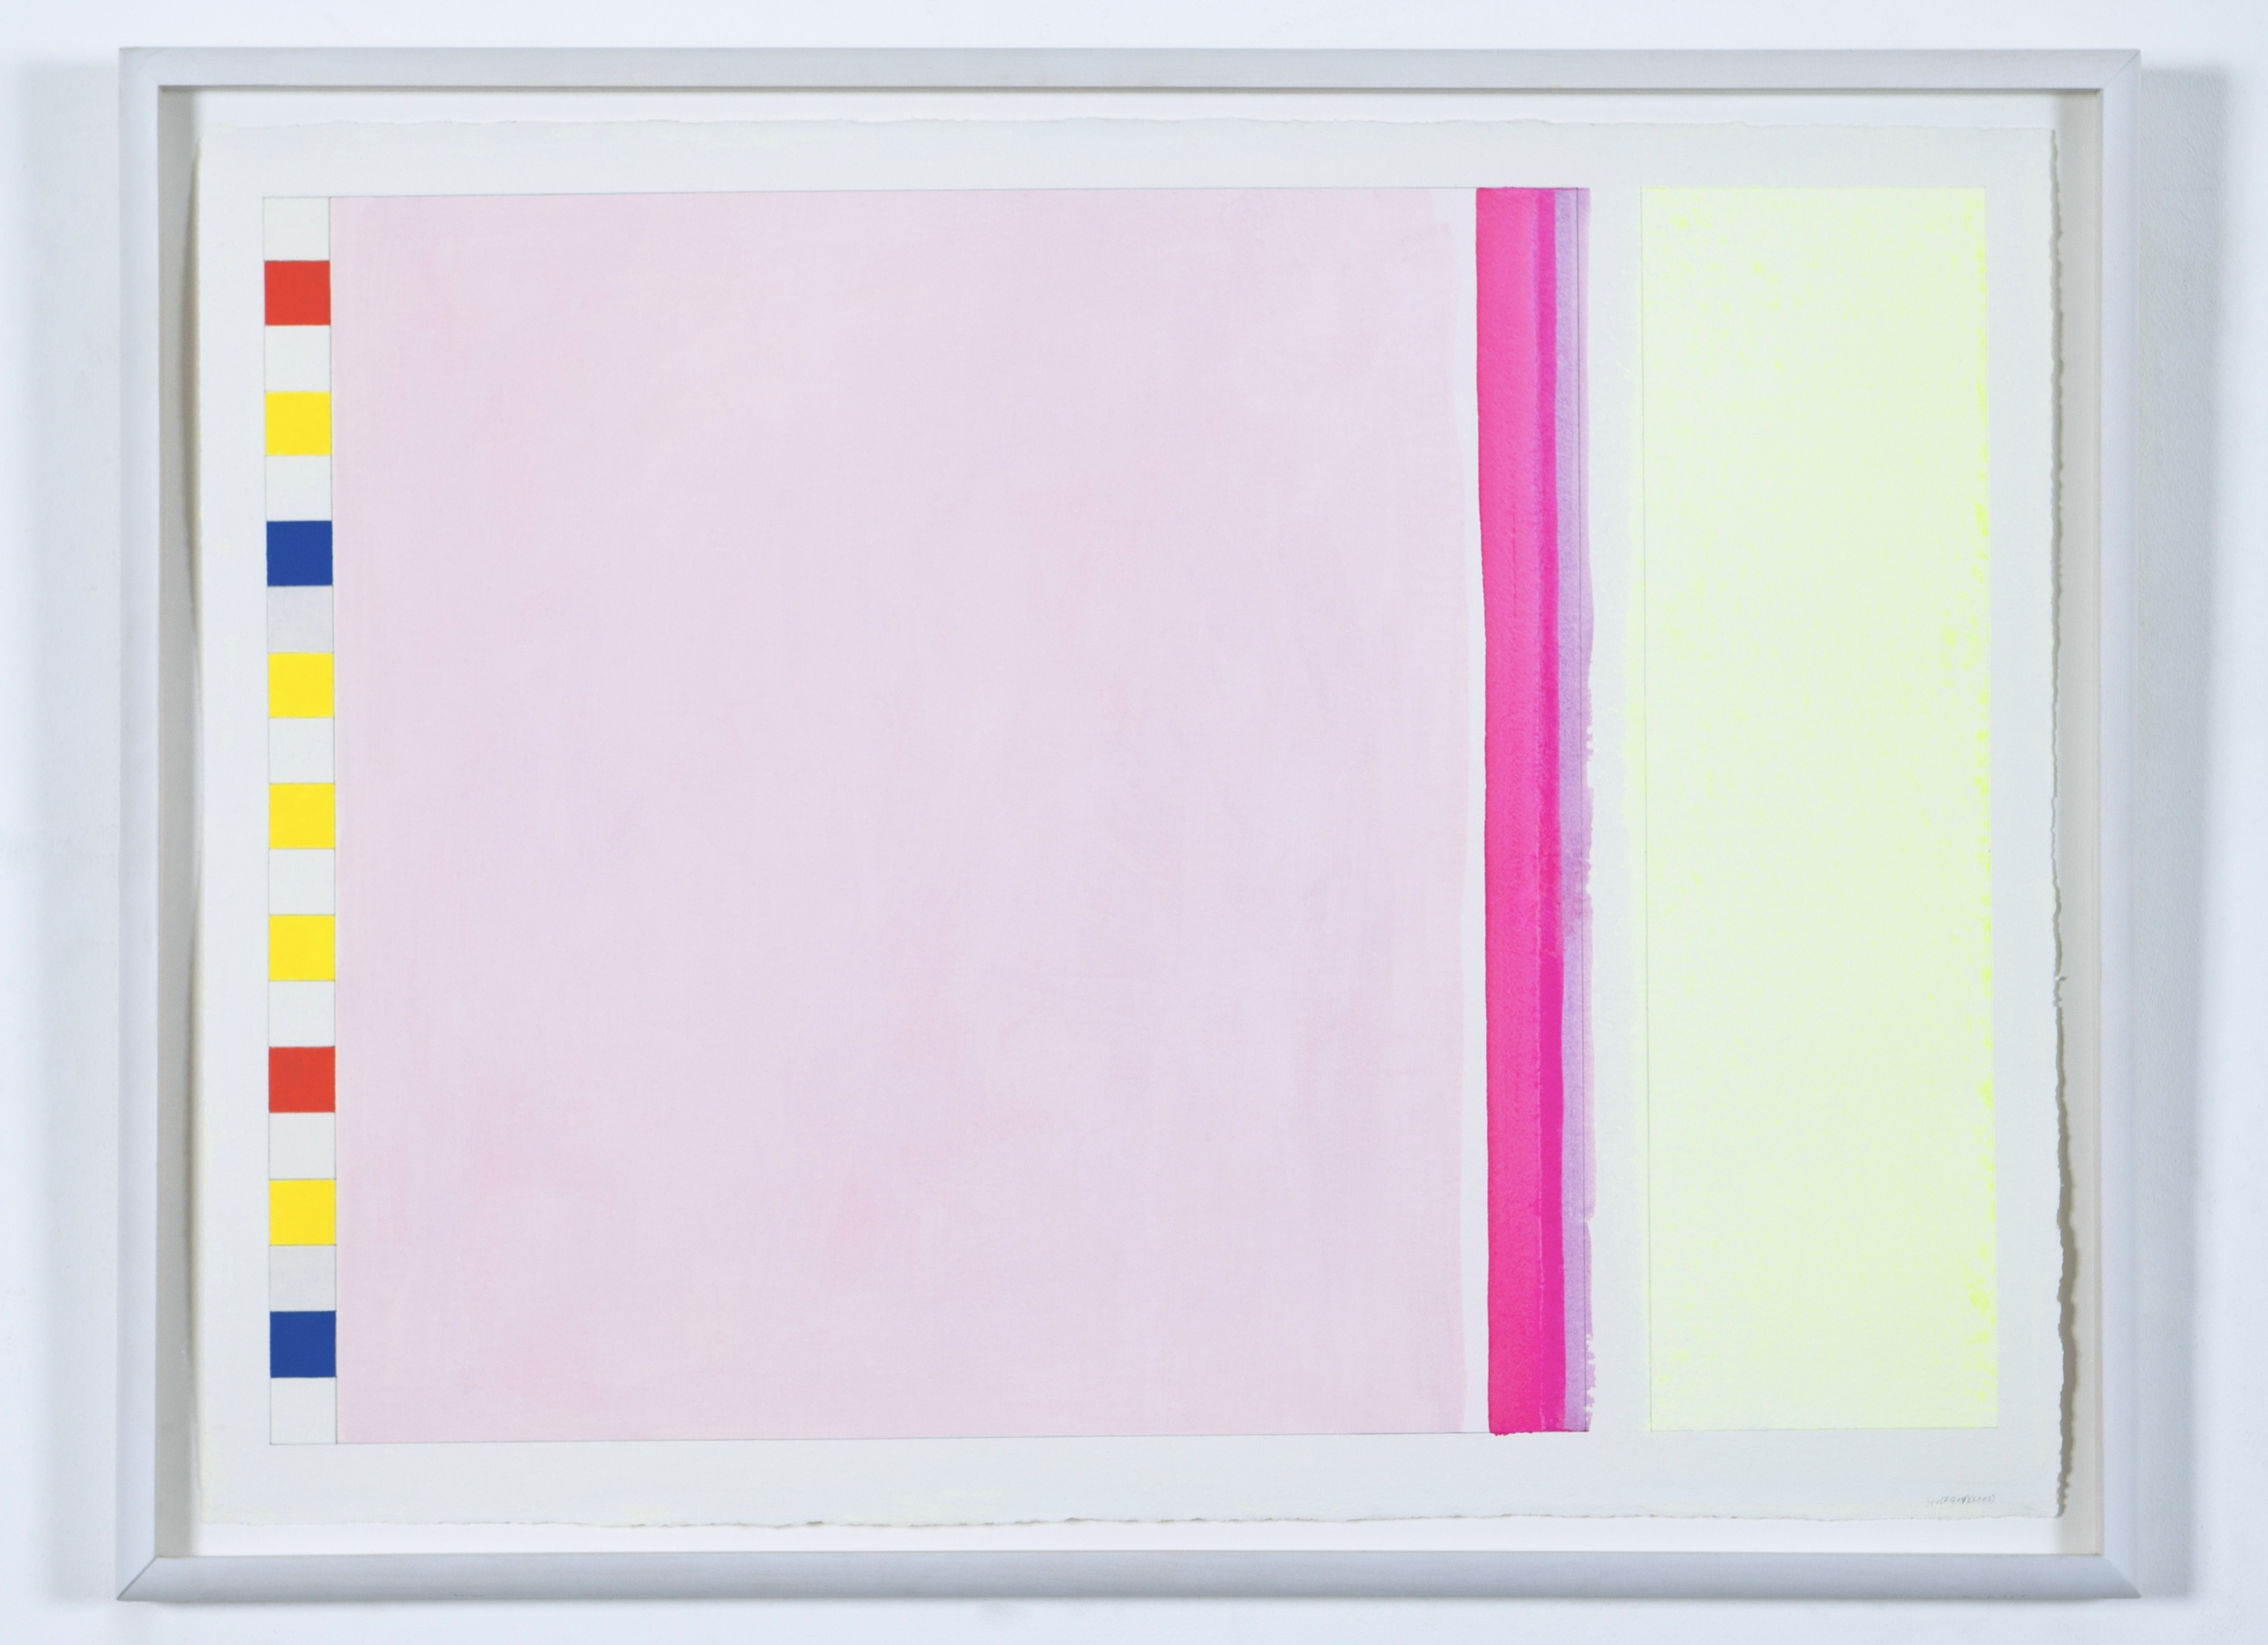 """Untitled (PG19), 2002, 20 3/16""""x27 15/16"""" (image), 22 3/4""""x30 3/8"""" (paper)"""